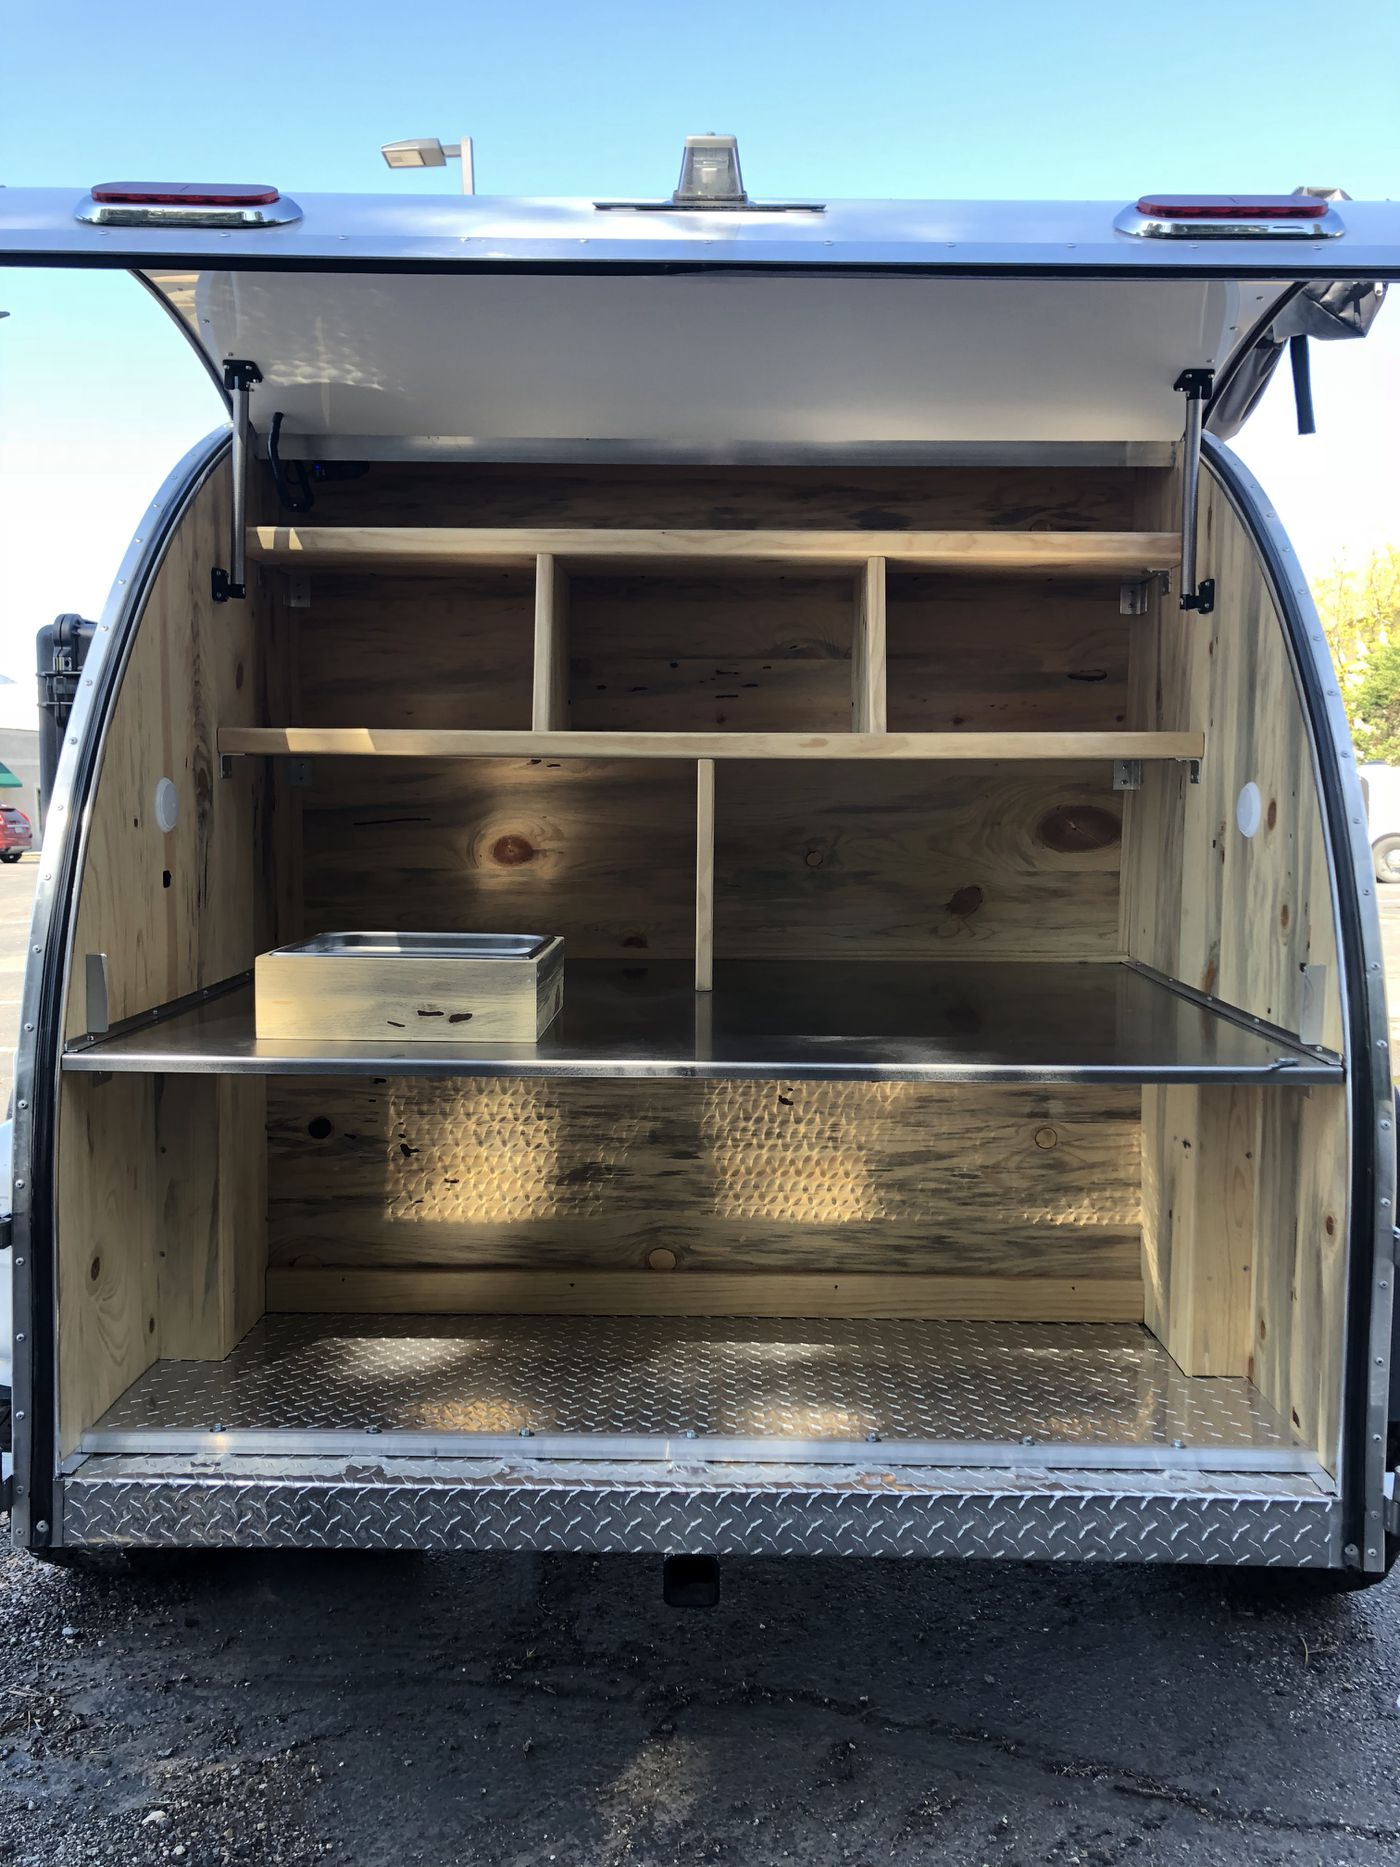 Camper trailer features bunkbeds to sleep a family of 4 - Curbed